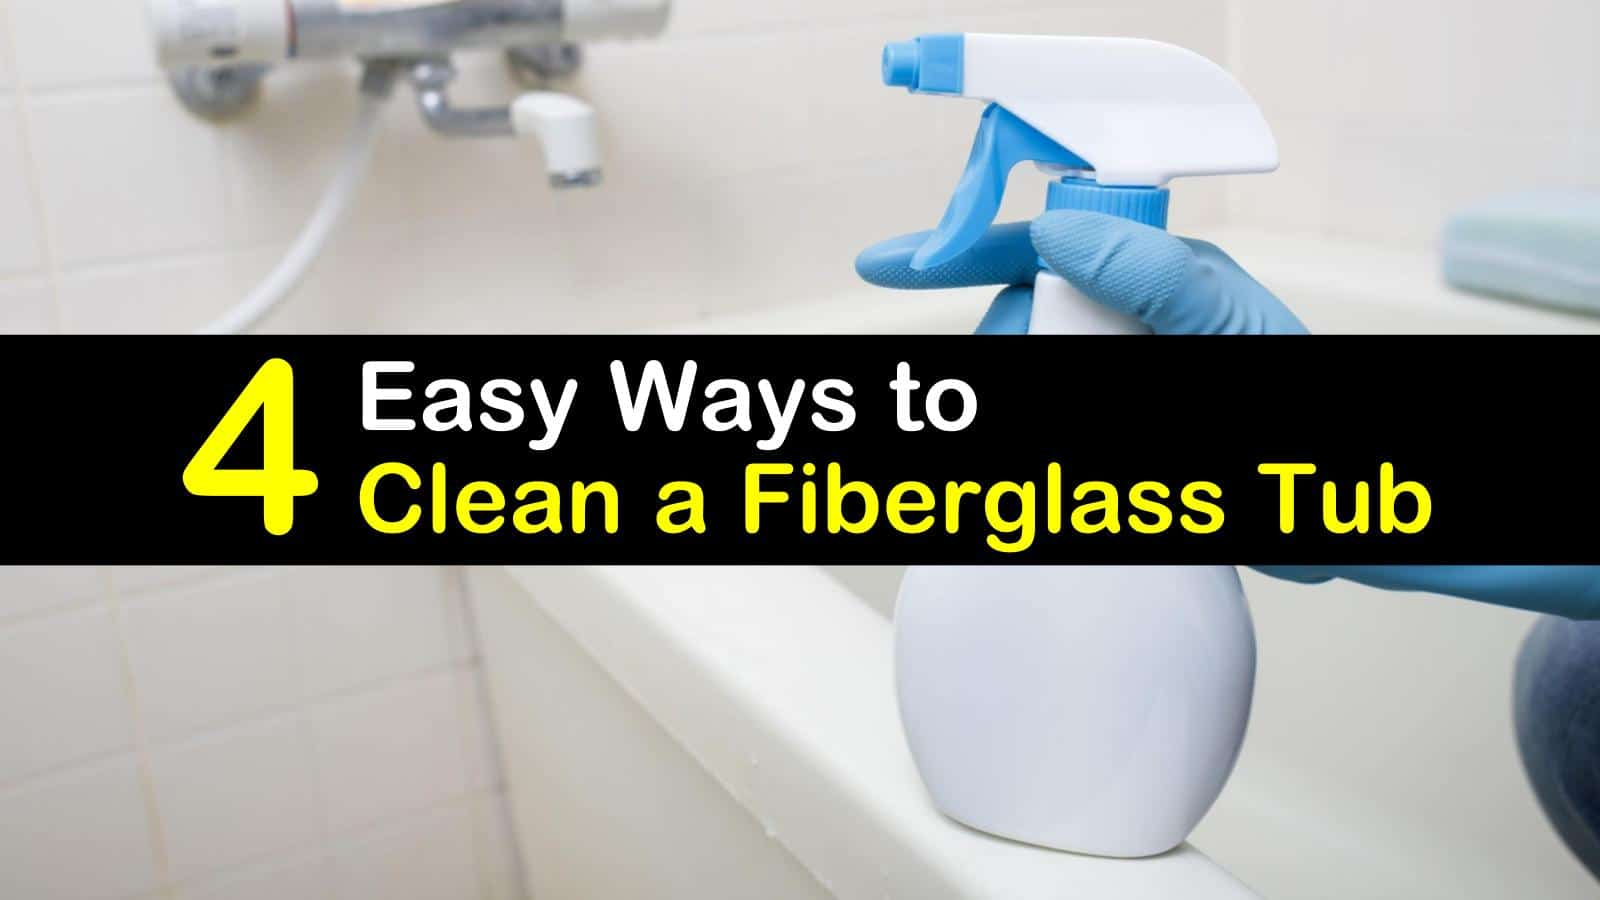 4 Easy Ways to Clean a Fiberglass Tub